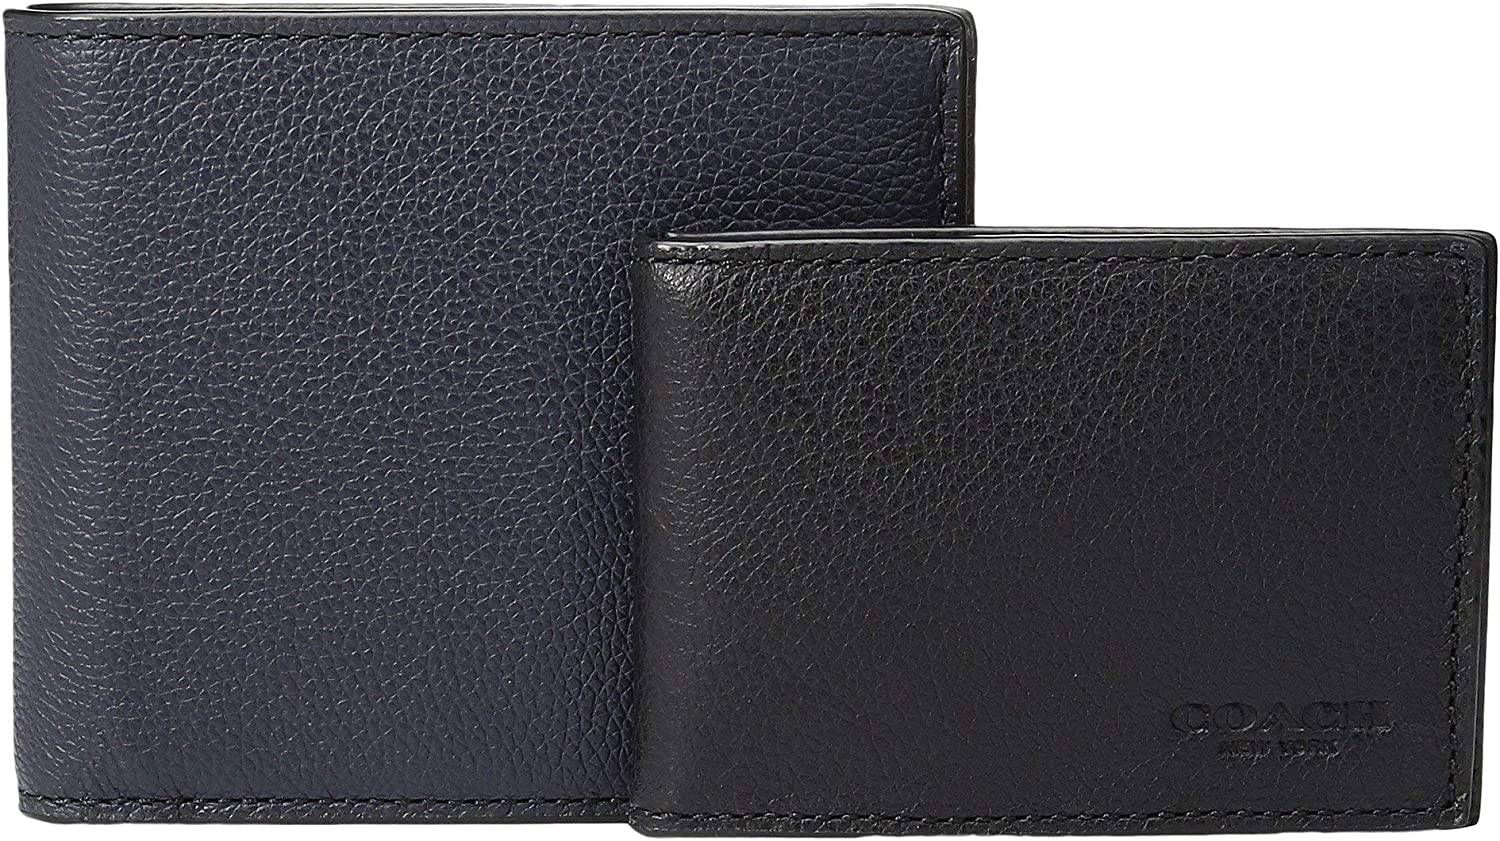 COACH Mens Leather 3-in-1 Wallet Set